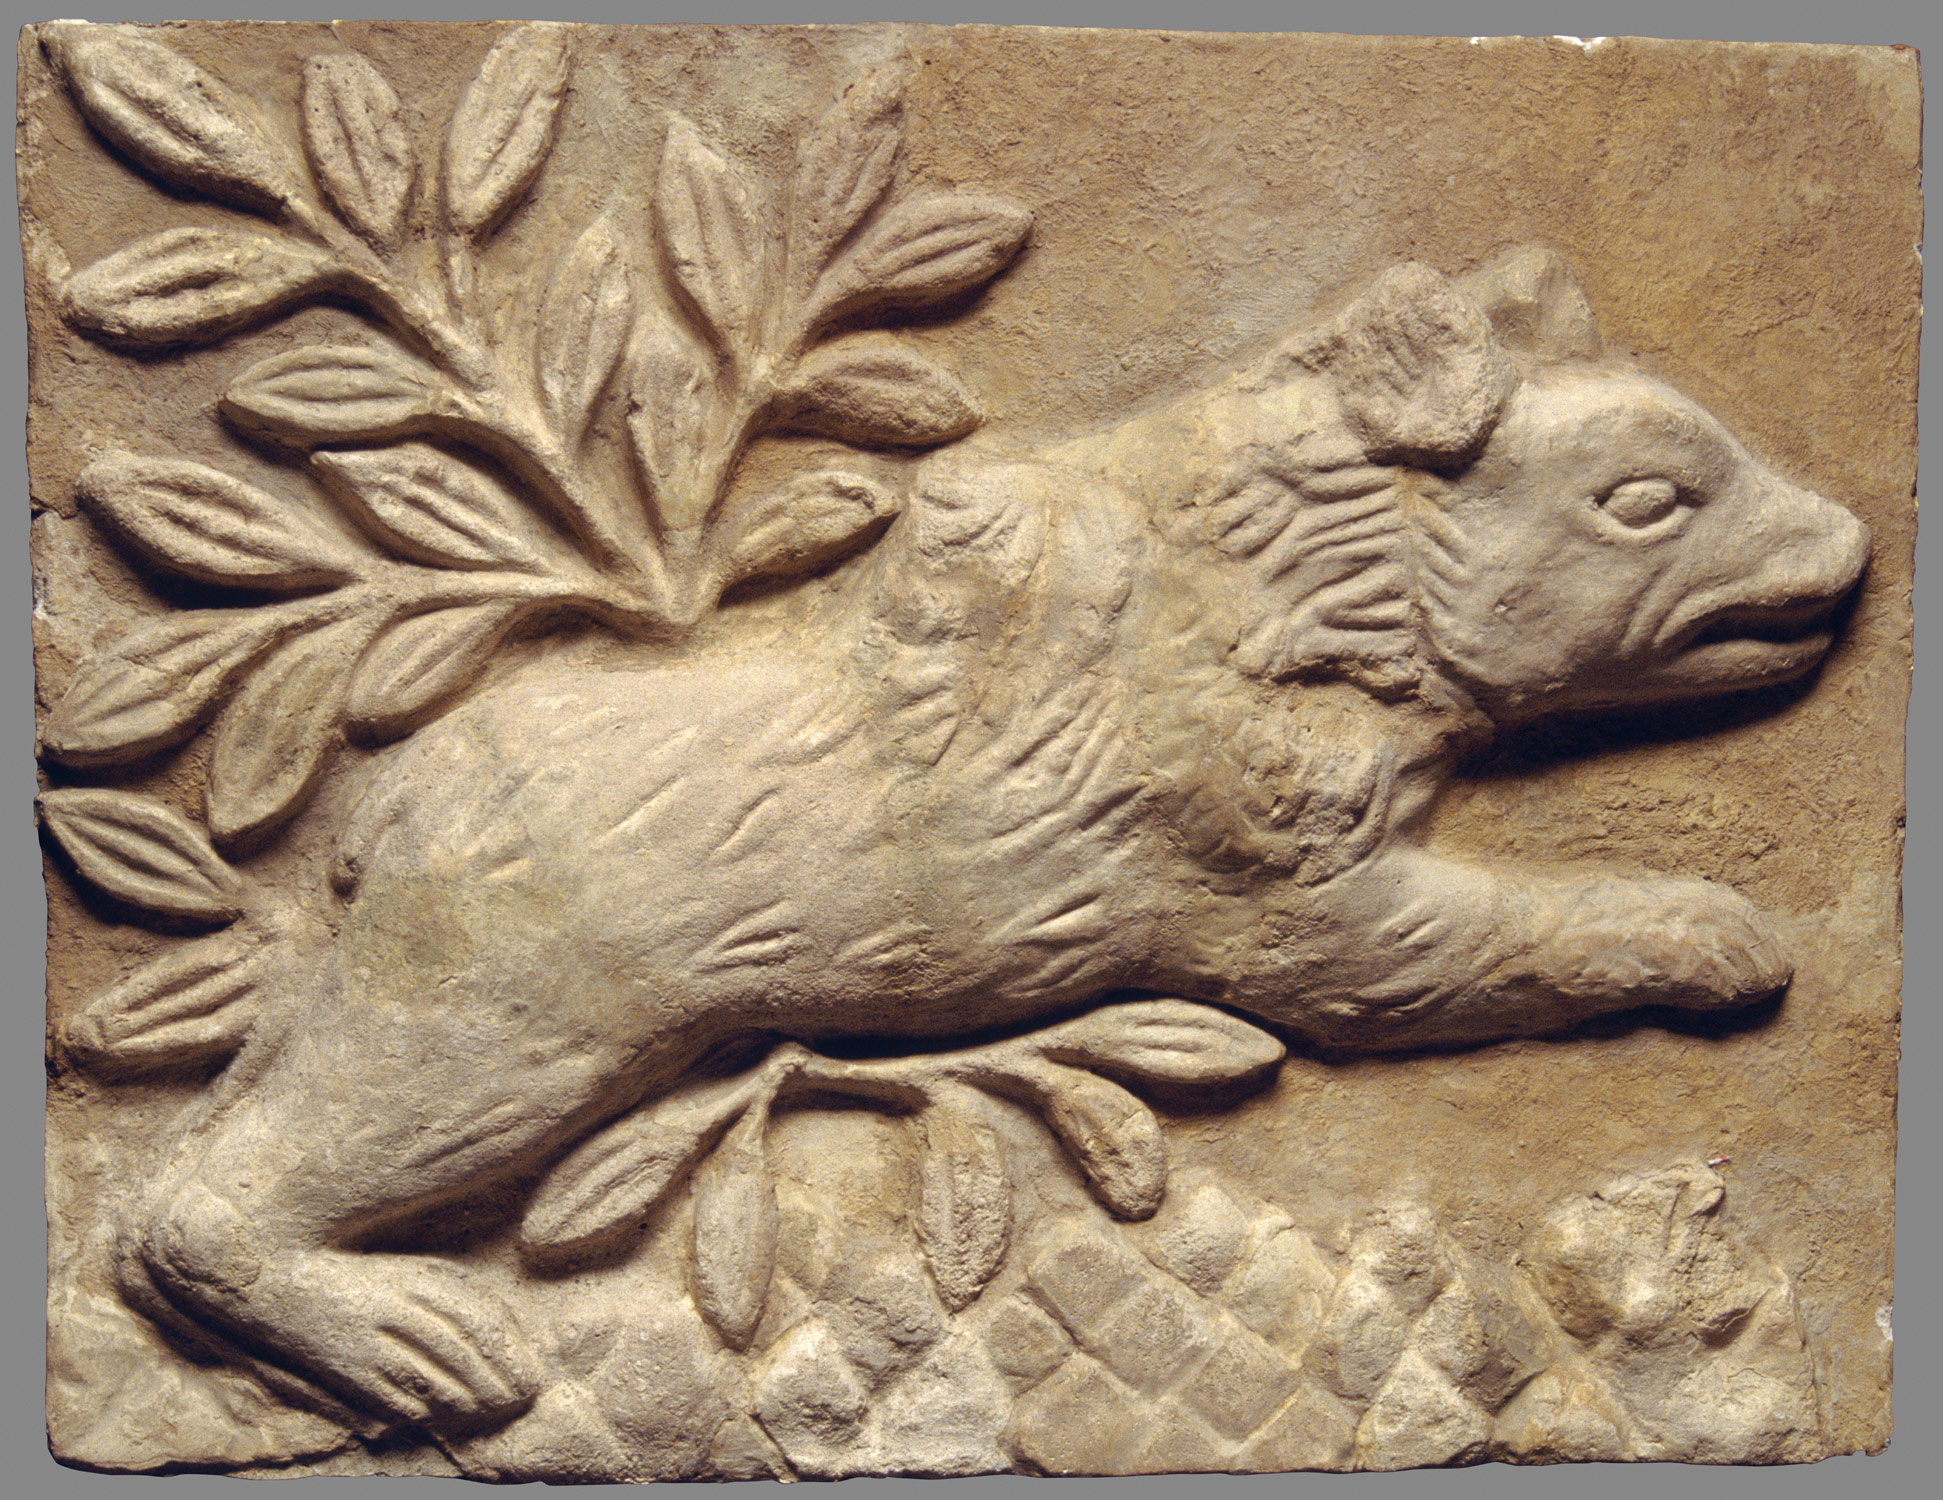 Wall panel with a charging bear